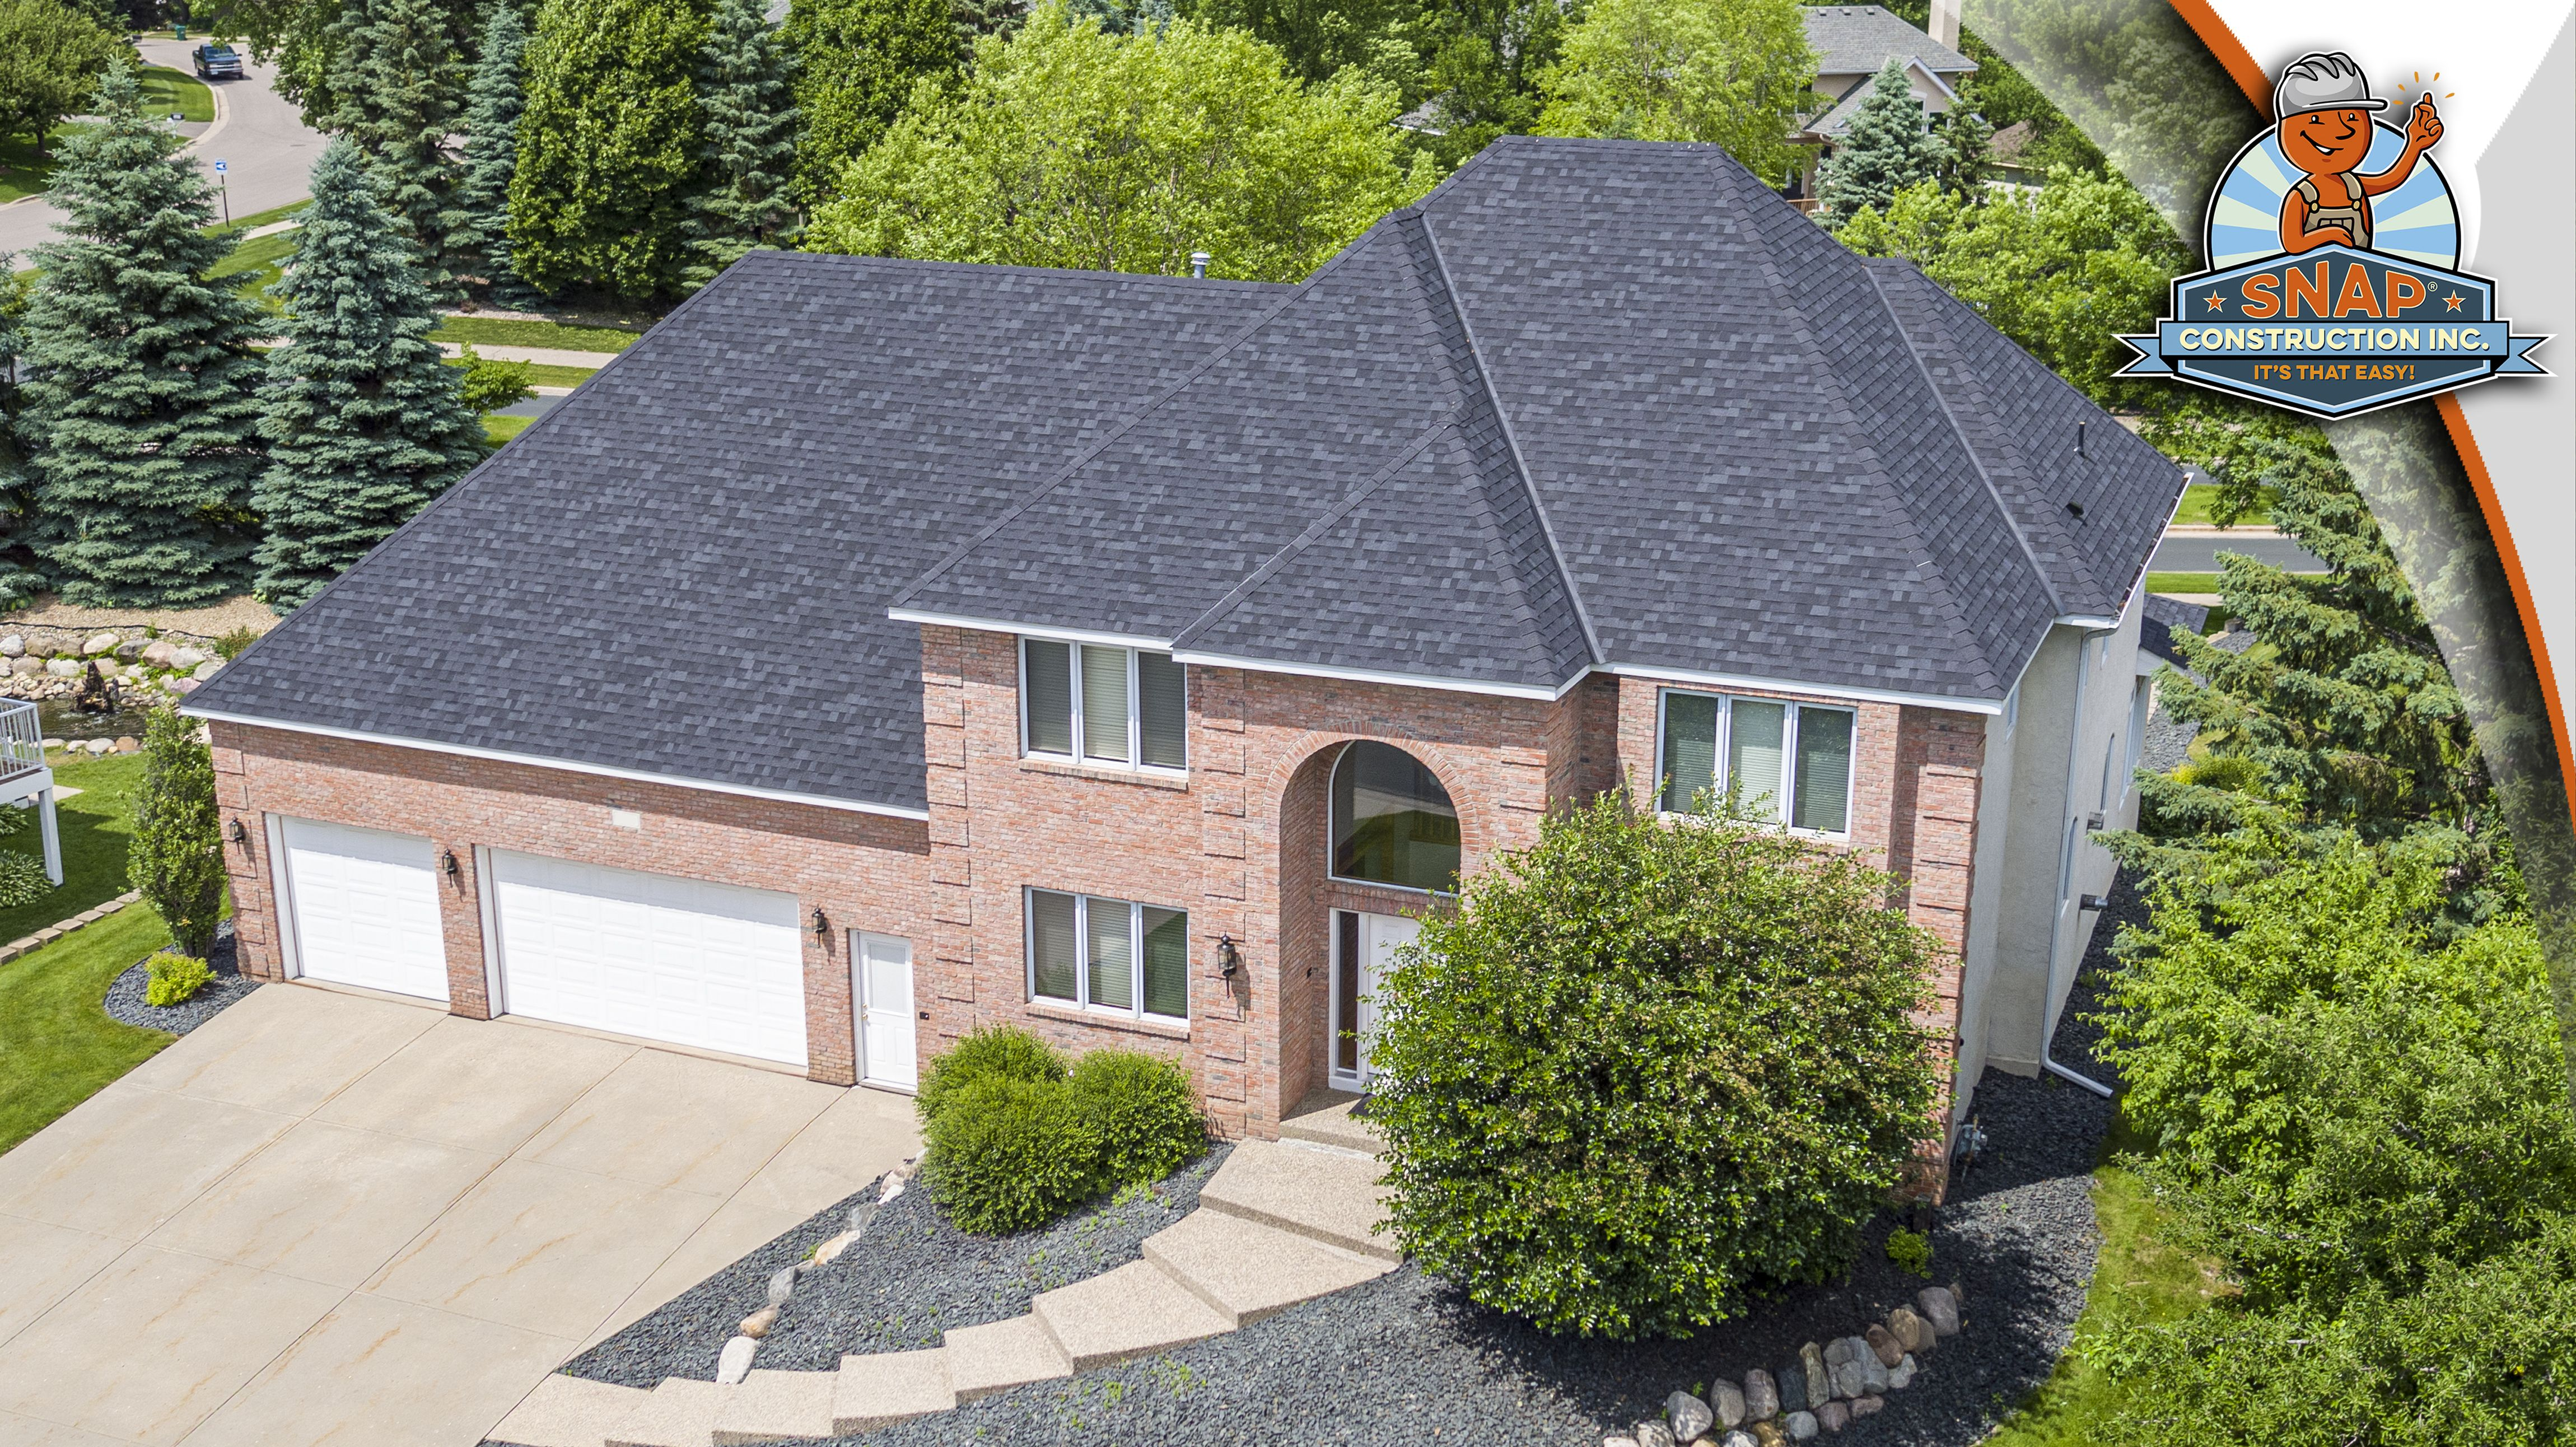 Best Owens Corning Trudefinition Duration Shingles In Onyx Black It S That Easy House Styles 400 x 300